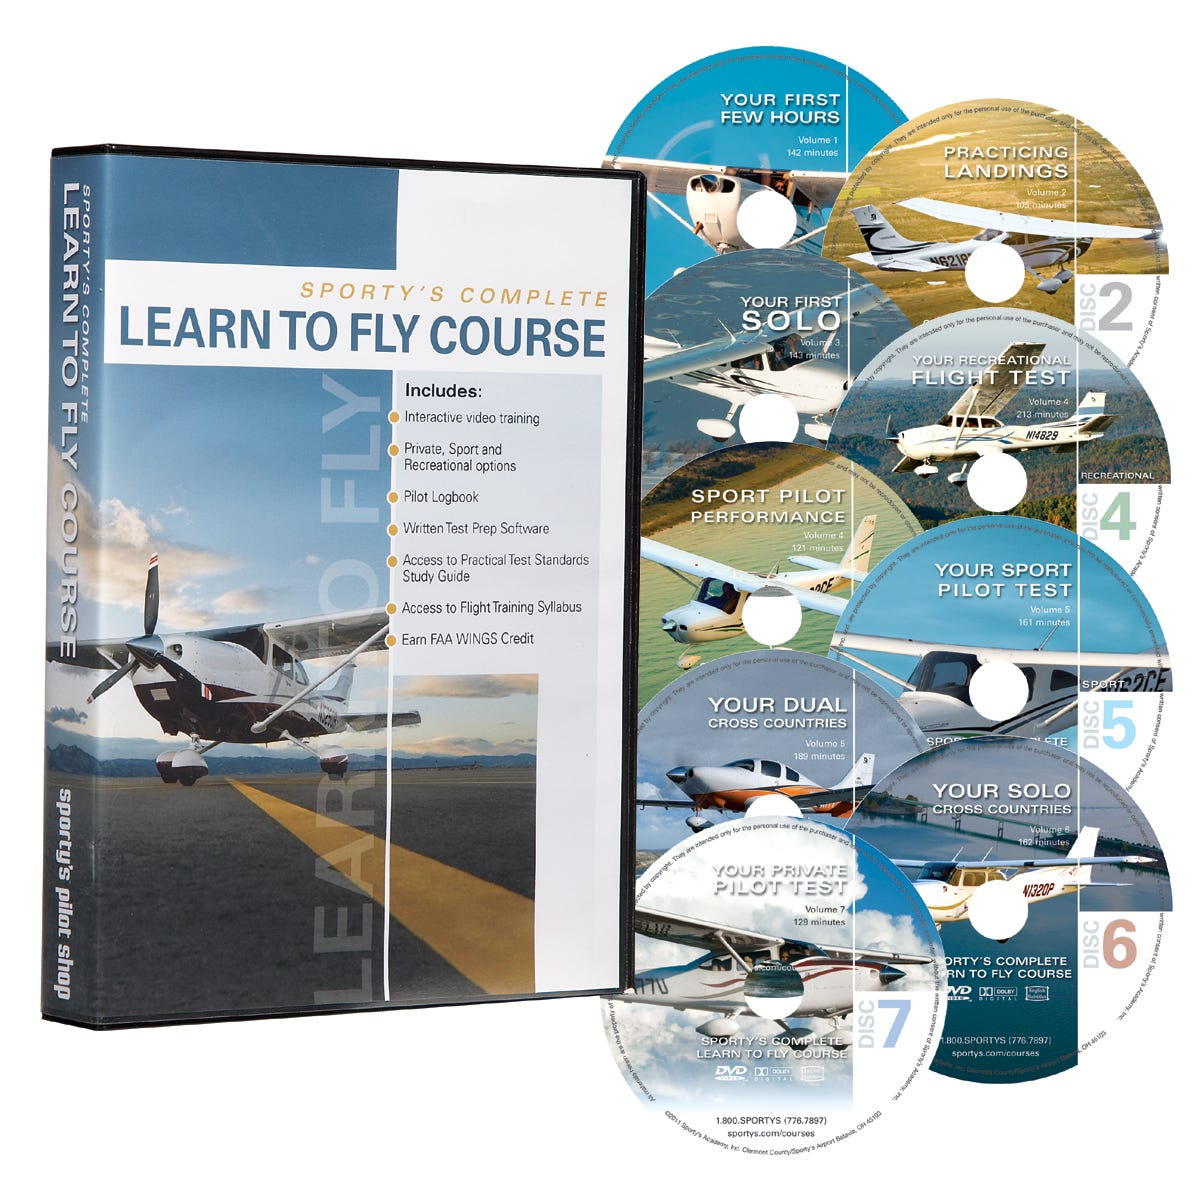 0a1247f7d62 Learn To Fly Course (DVD) - Private Pilot Test Prep - from Sporty s Pilot  Shop